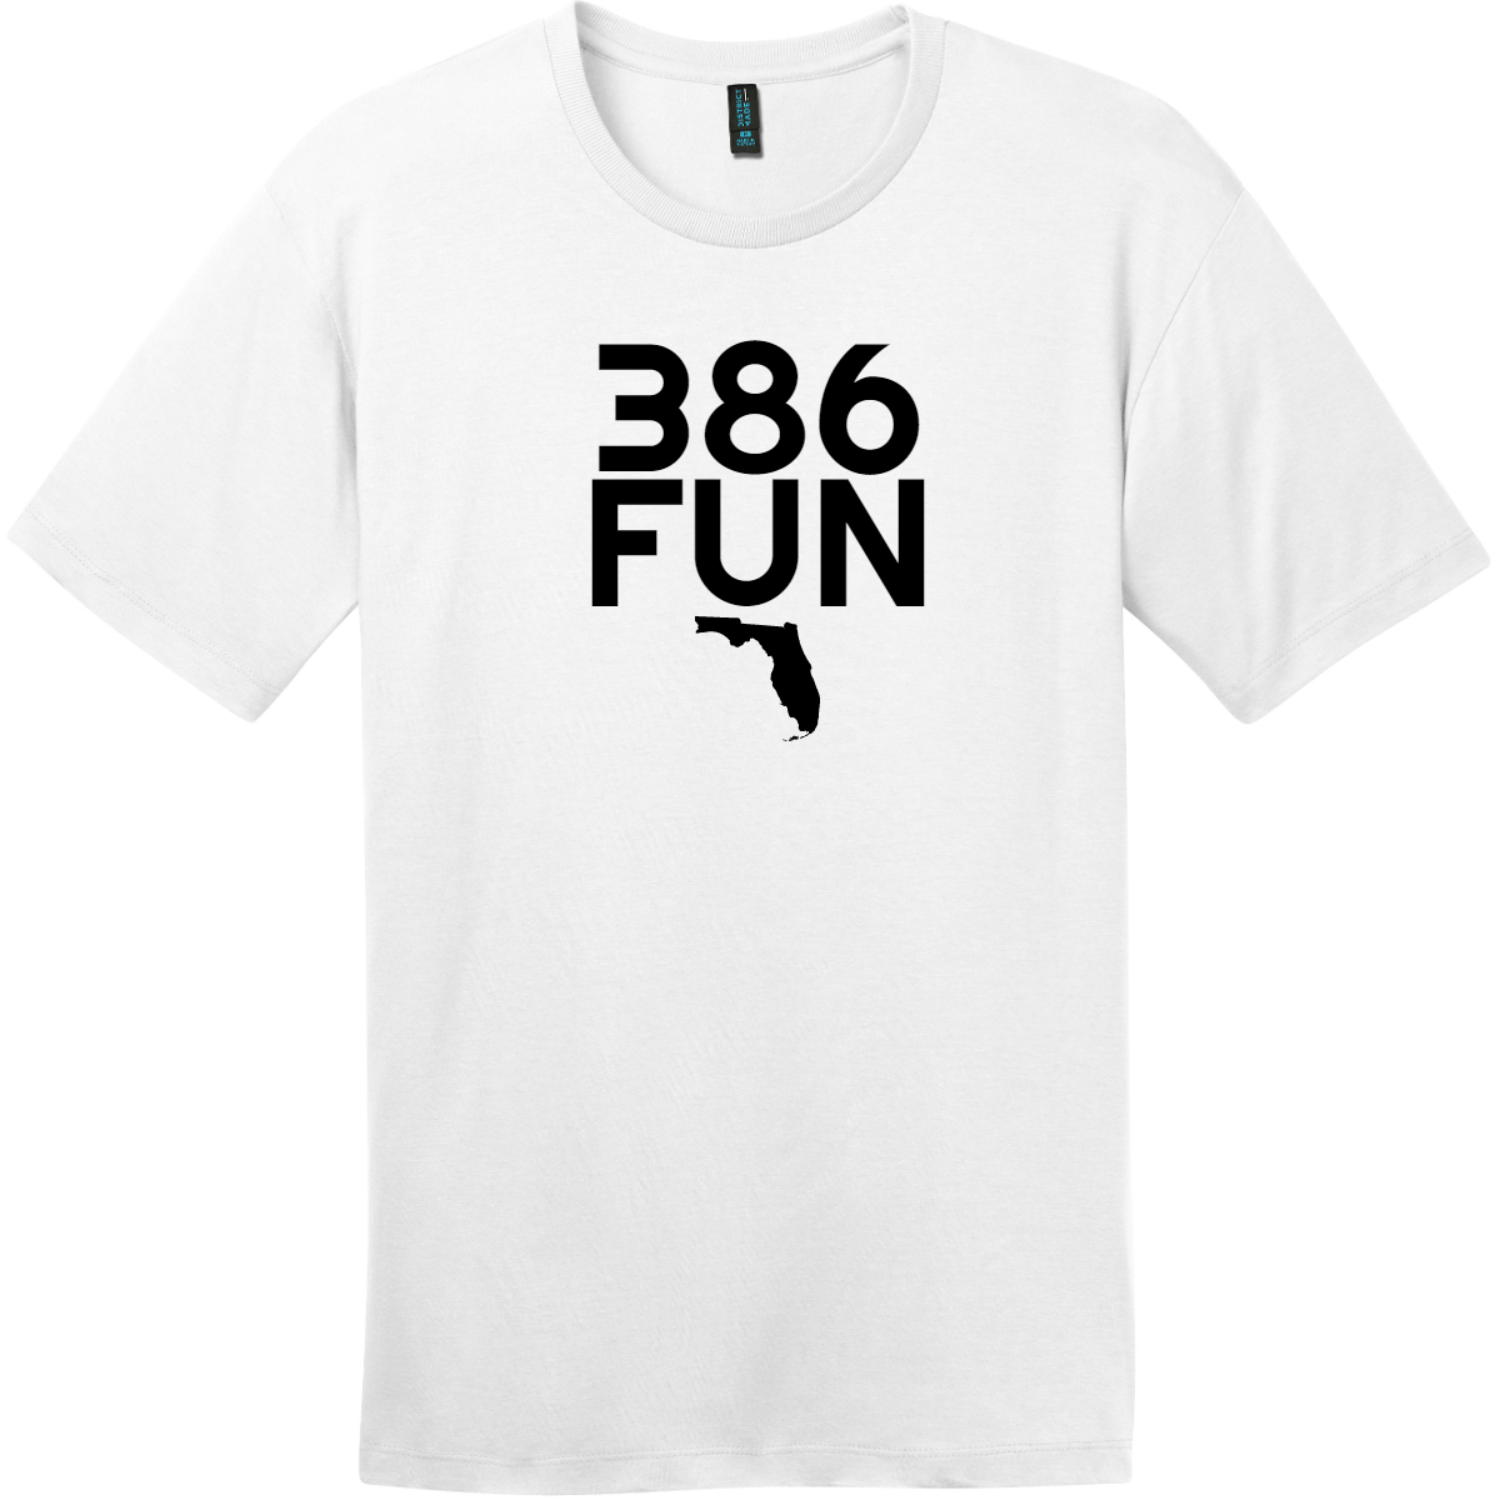 386 Fun Florida T-Shirt Bright White District Perfect Weight Tee DT104